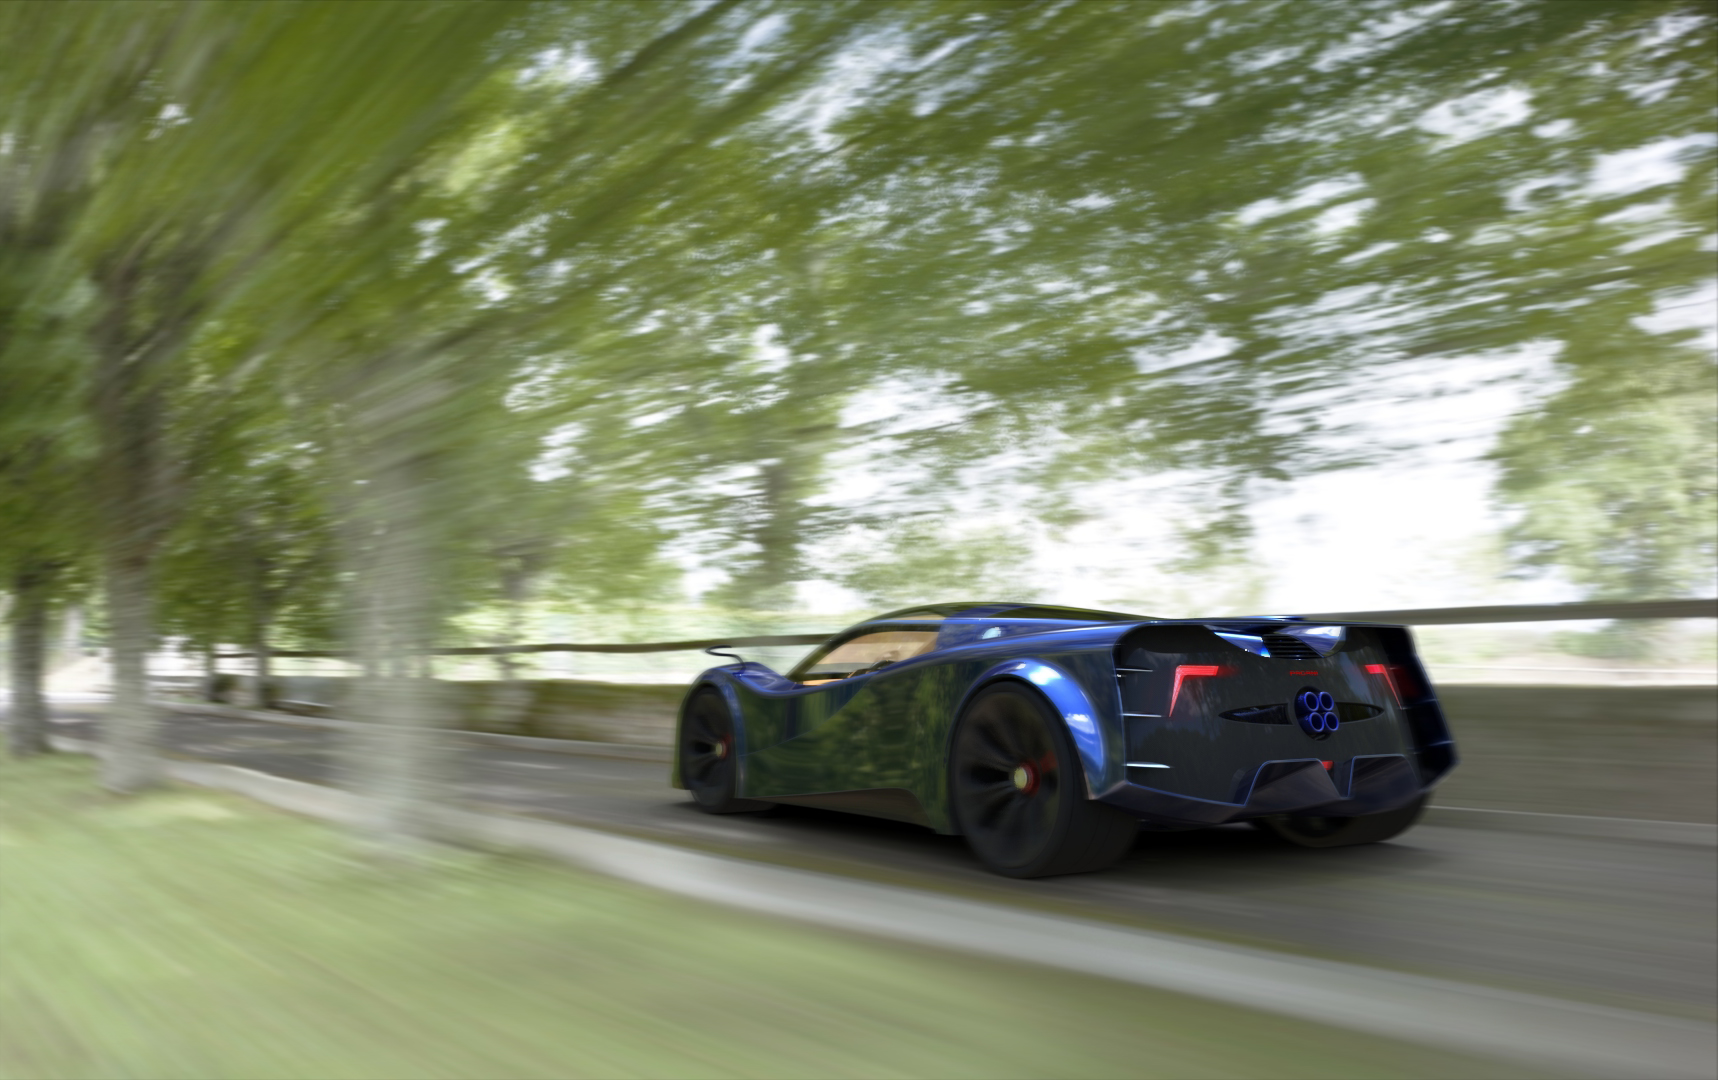 Pagani-car-wallpaper-wp421432-1